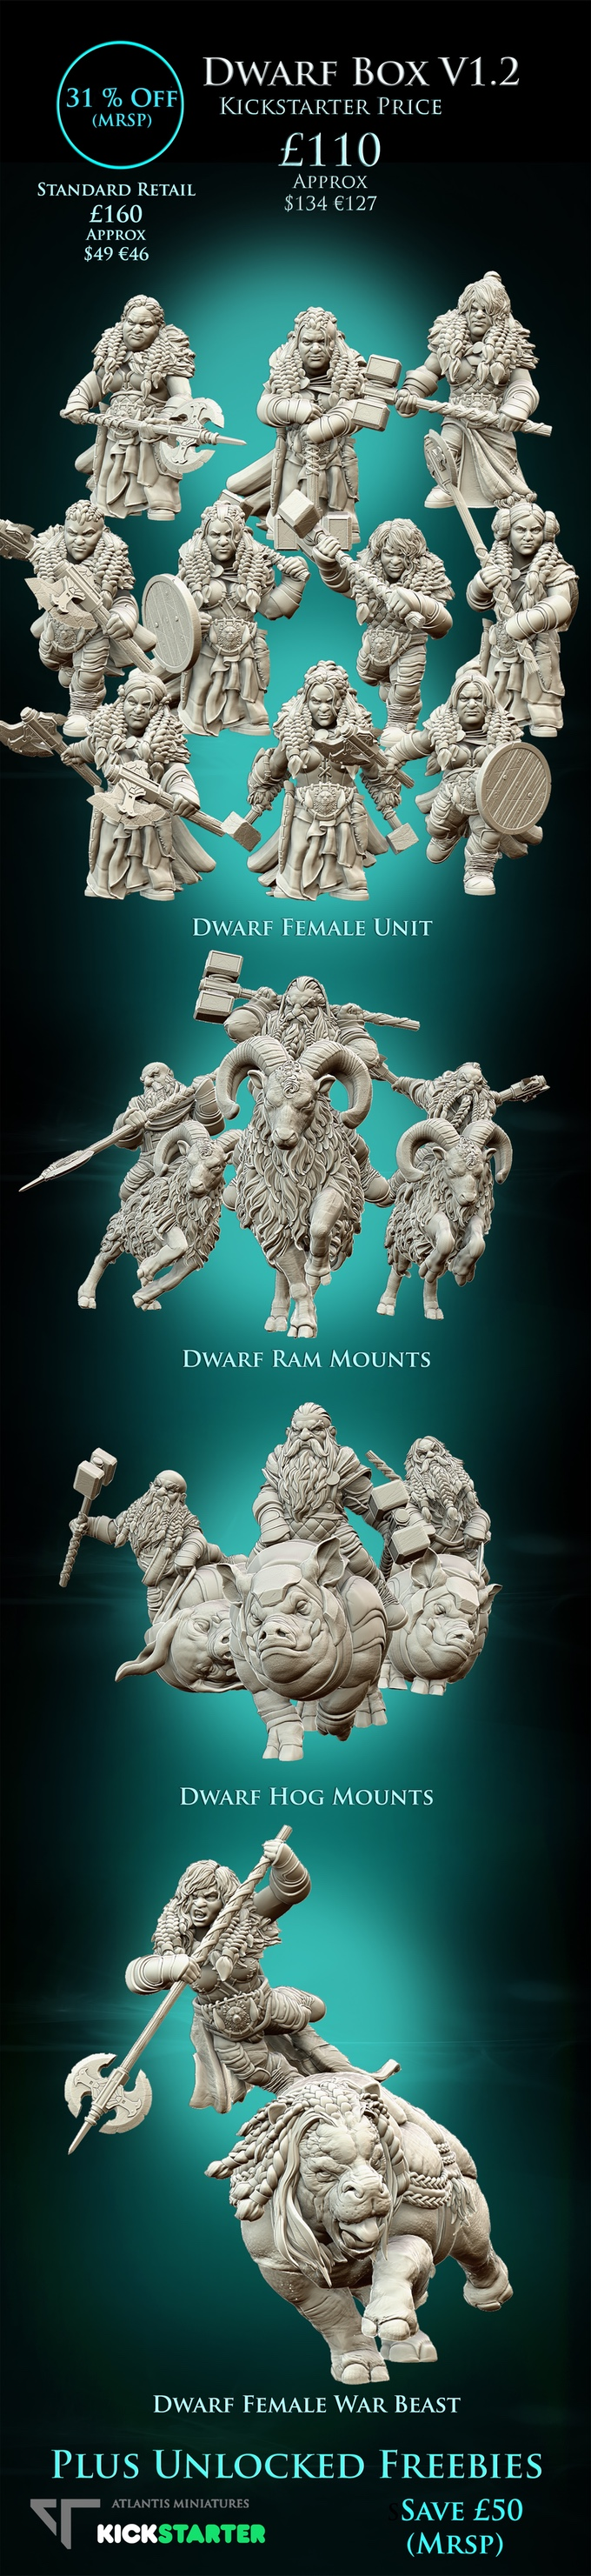 Dwarf Box 1.2 - Atlantis Miniatures